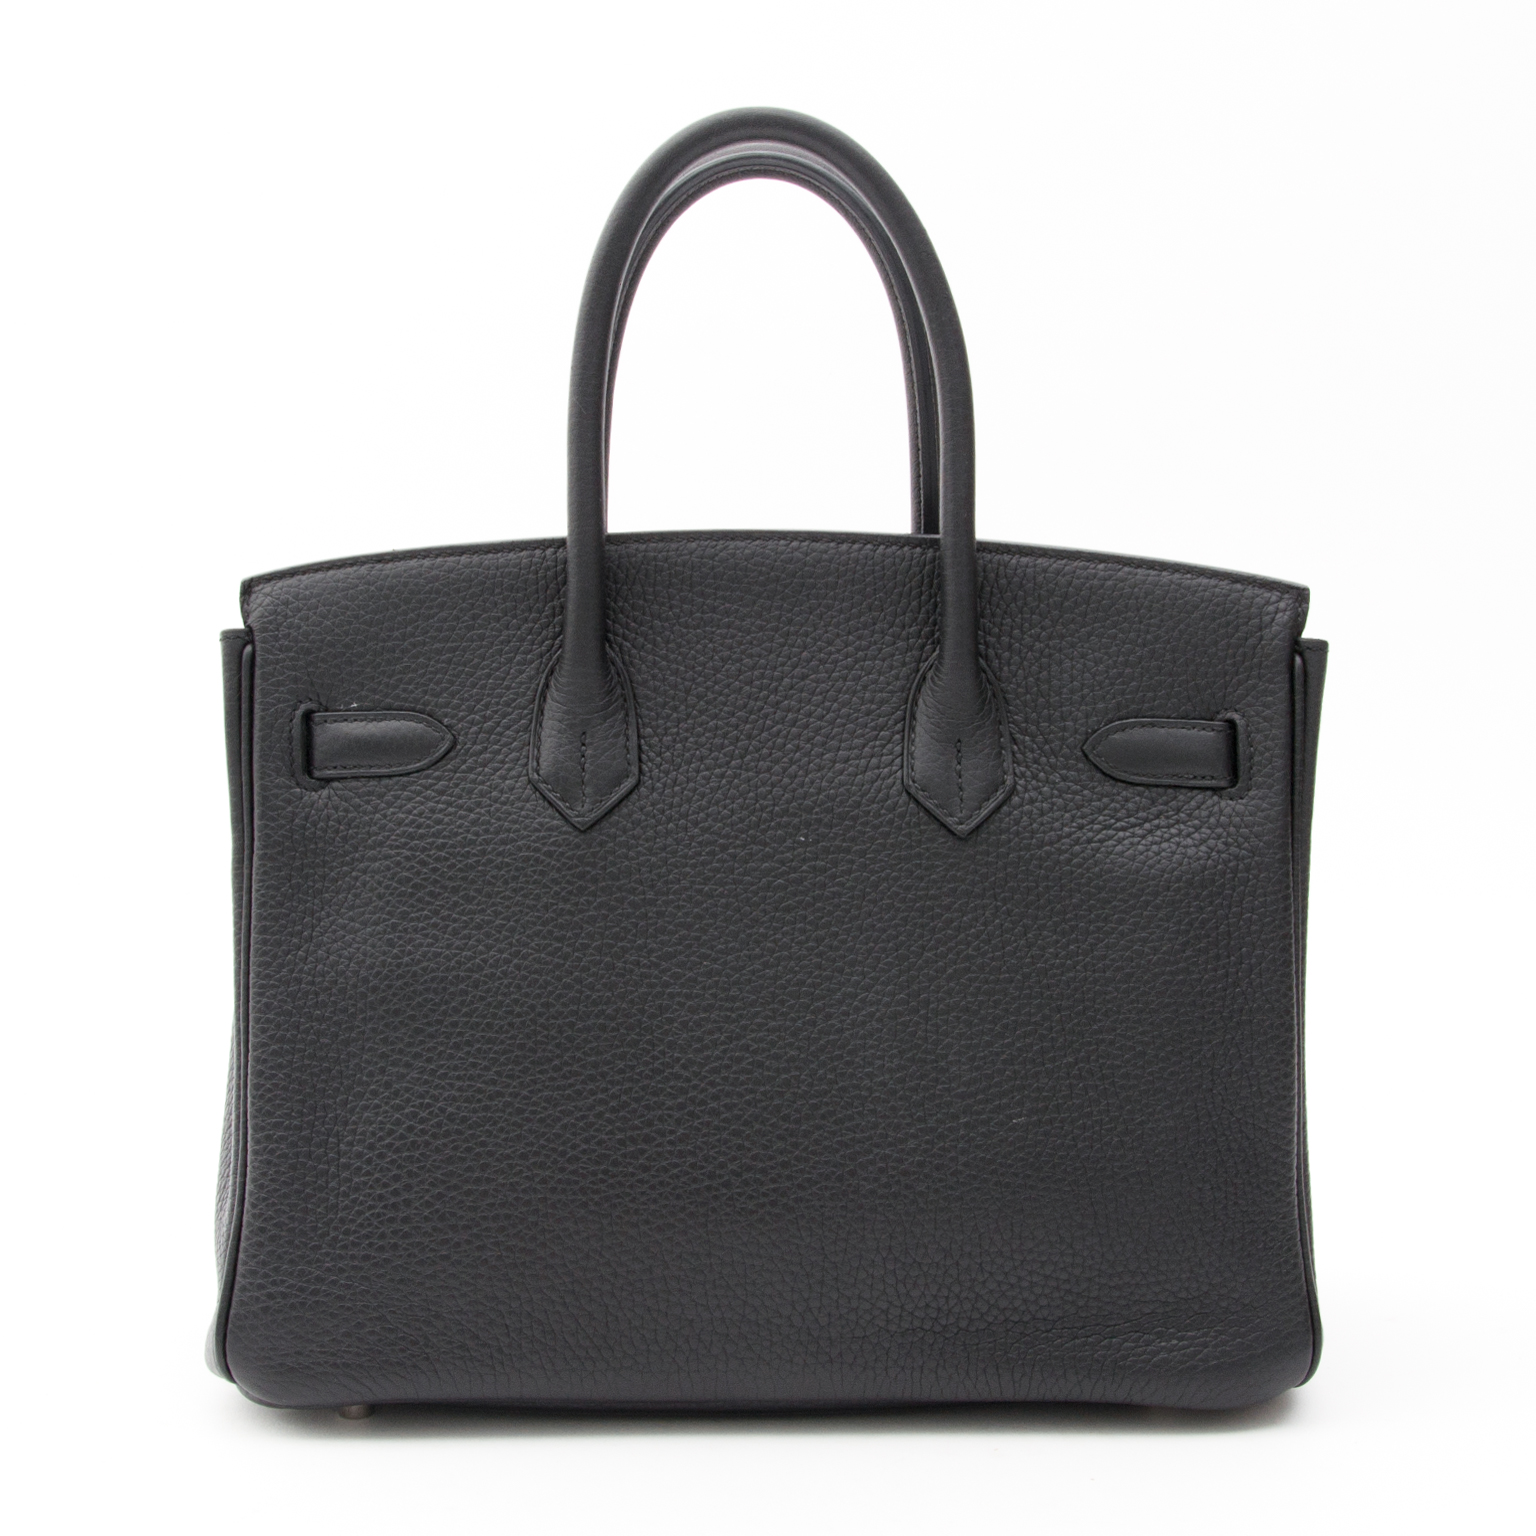 knock off hermes bags - Birkin - Bags Your go-to shopping place for vintage \u0026amp; pre-loved ...